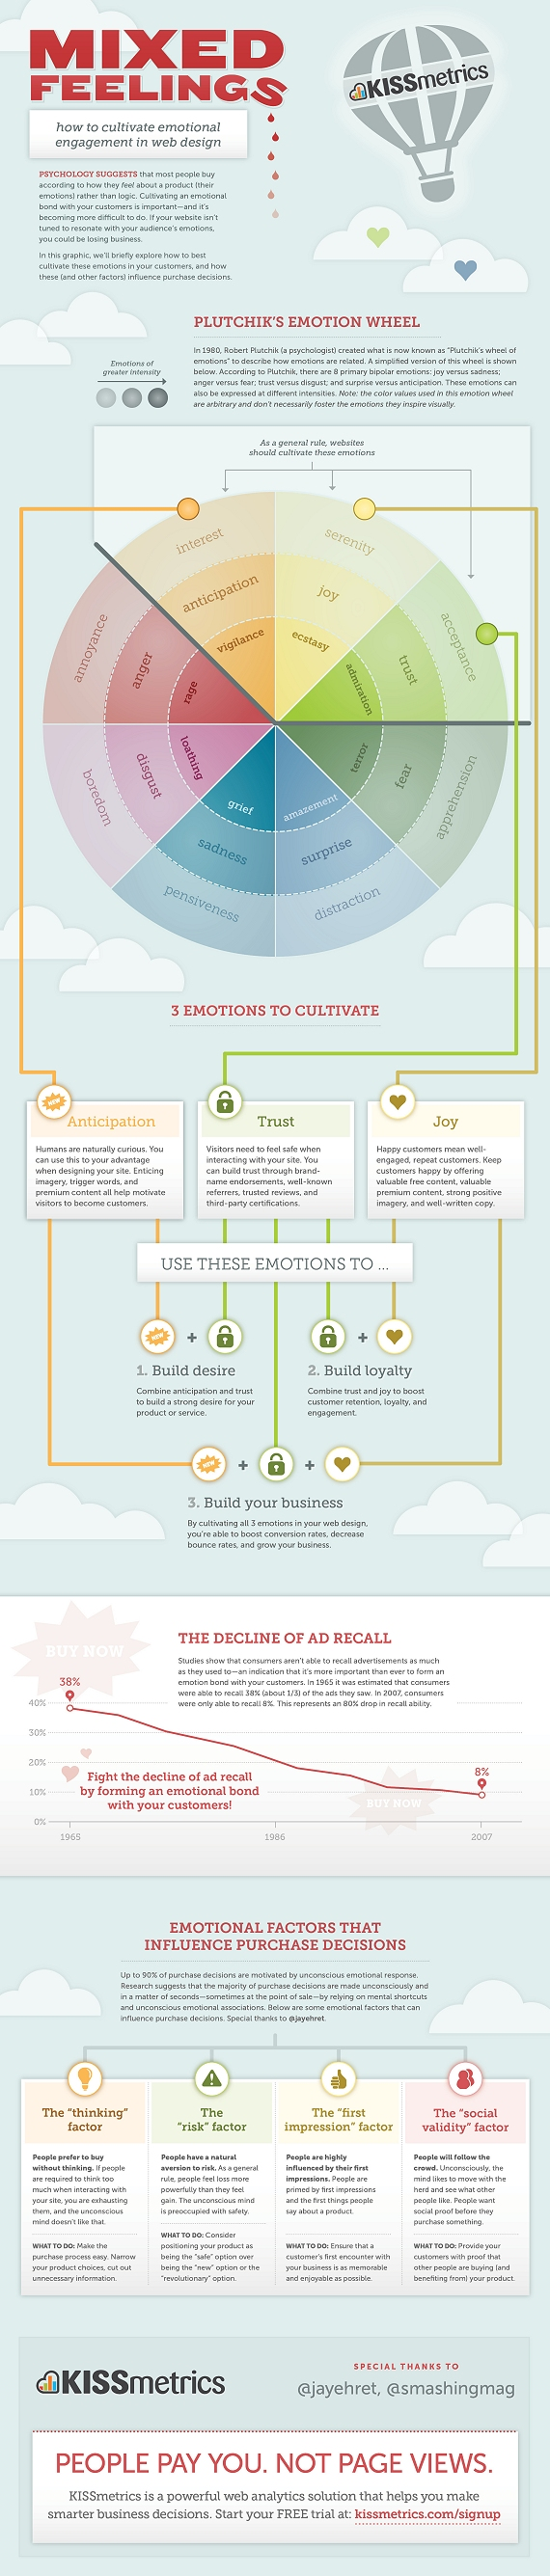 Infographic highlighting some key factors in building emotional engagement through web design